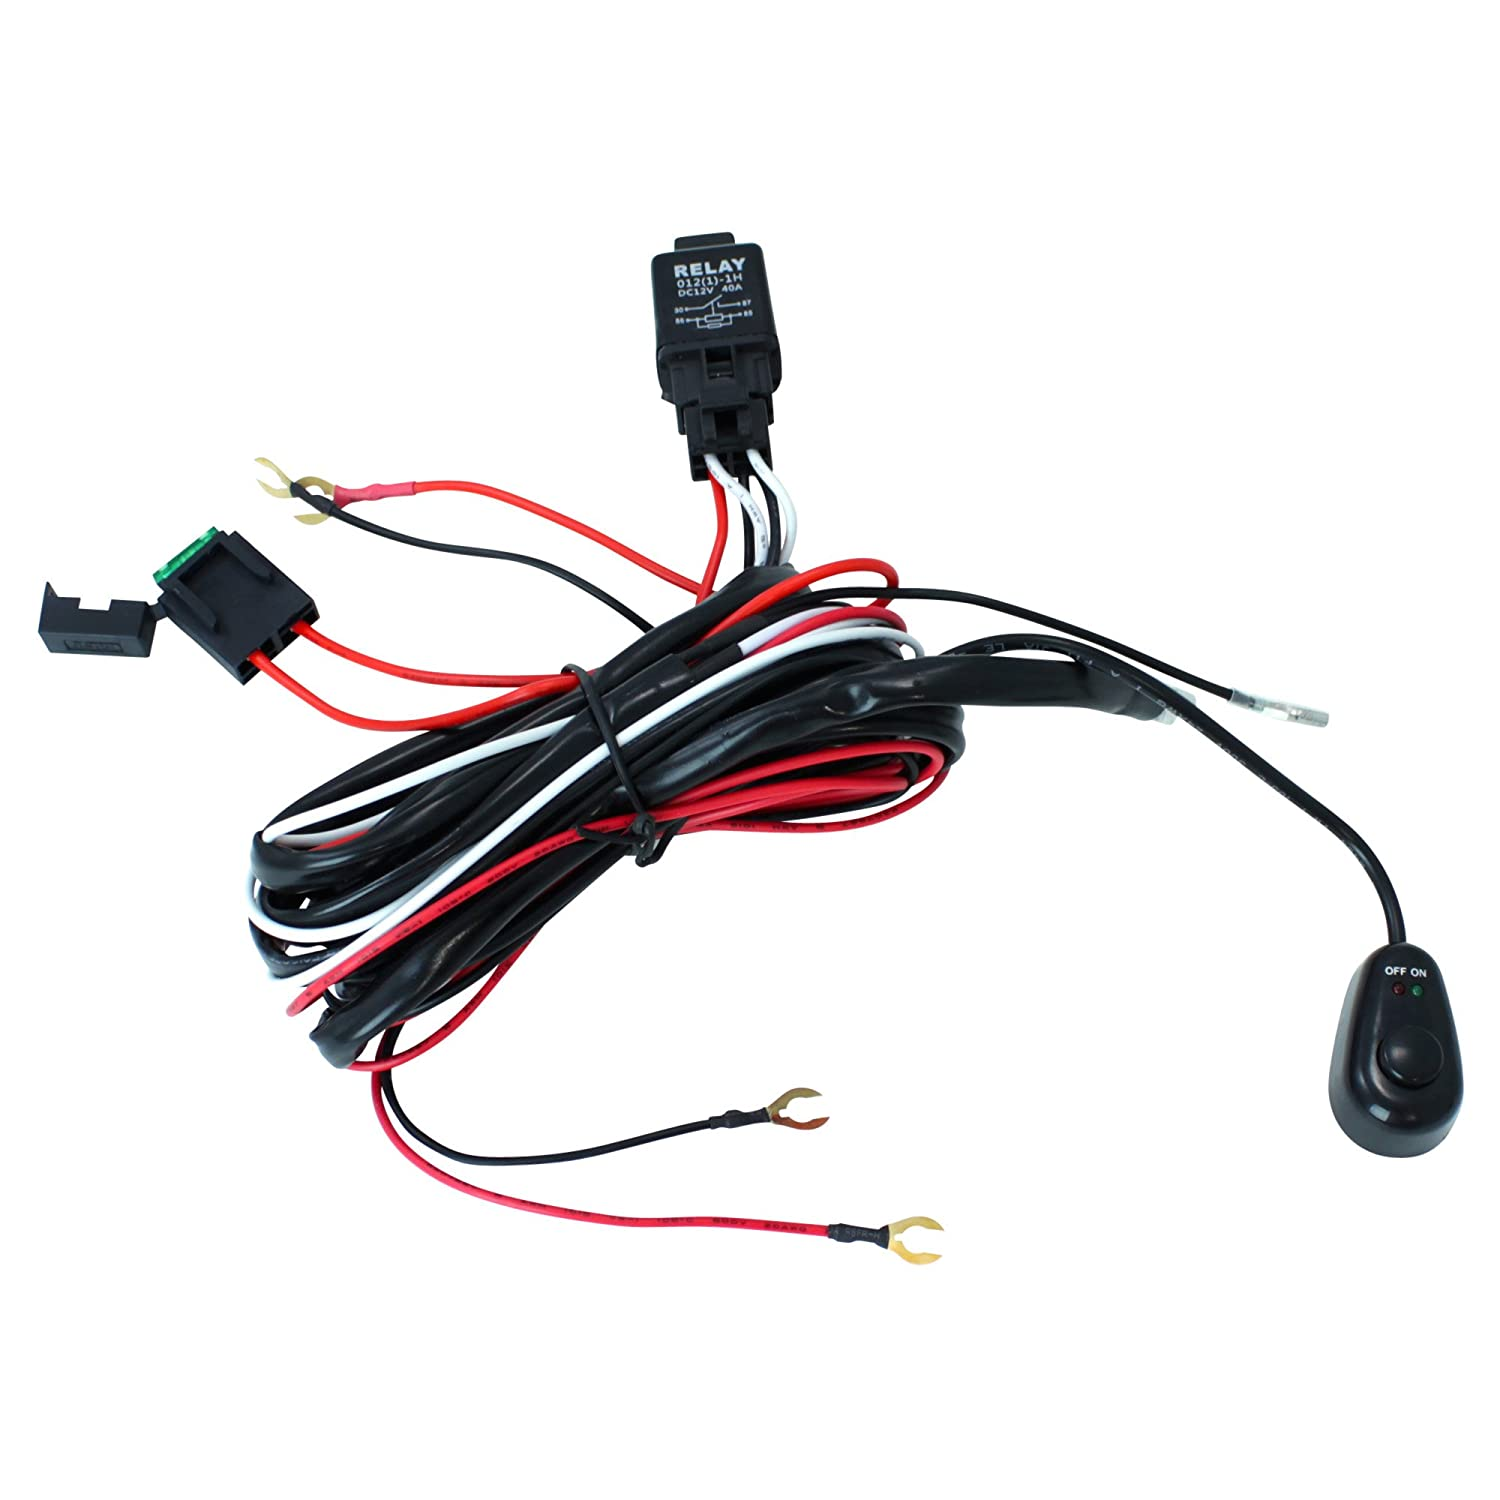 71ONjFALDCL._SL1500_ amazon com dt moto™ off road atv jeep led light bar wiring Dt Moto CA at mifinder.co